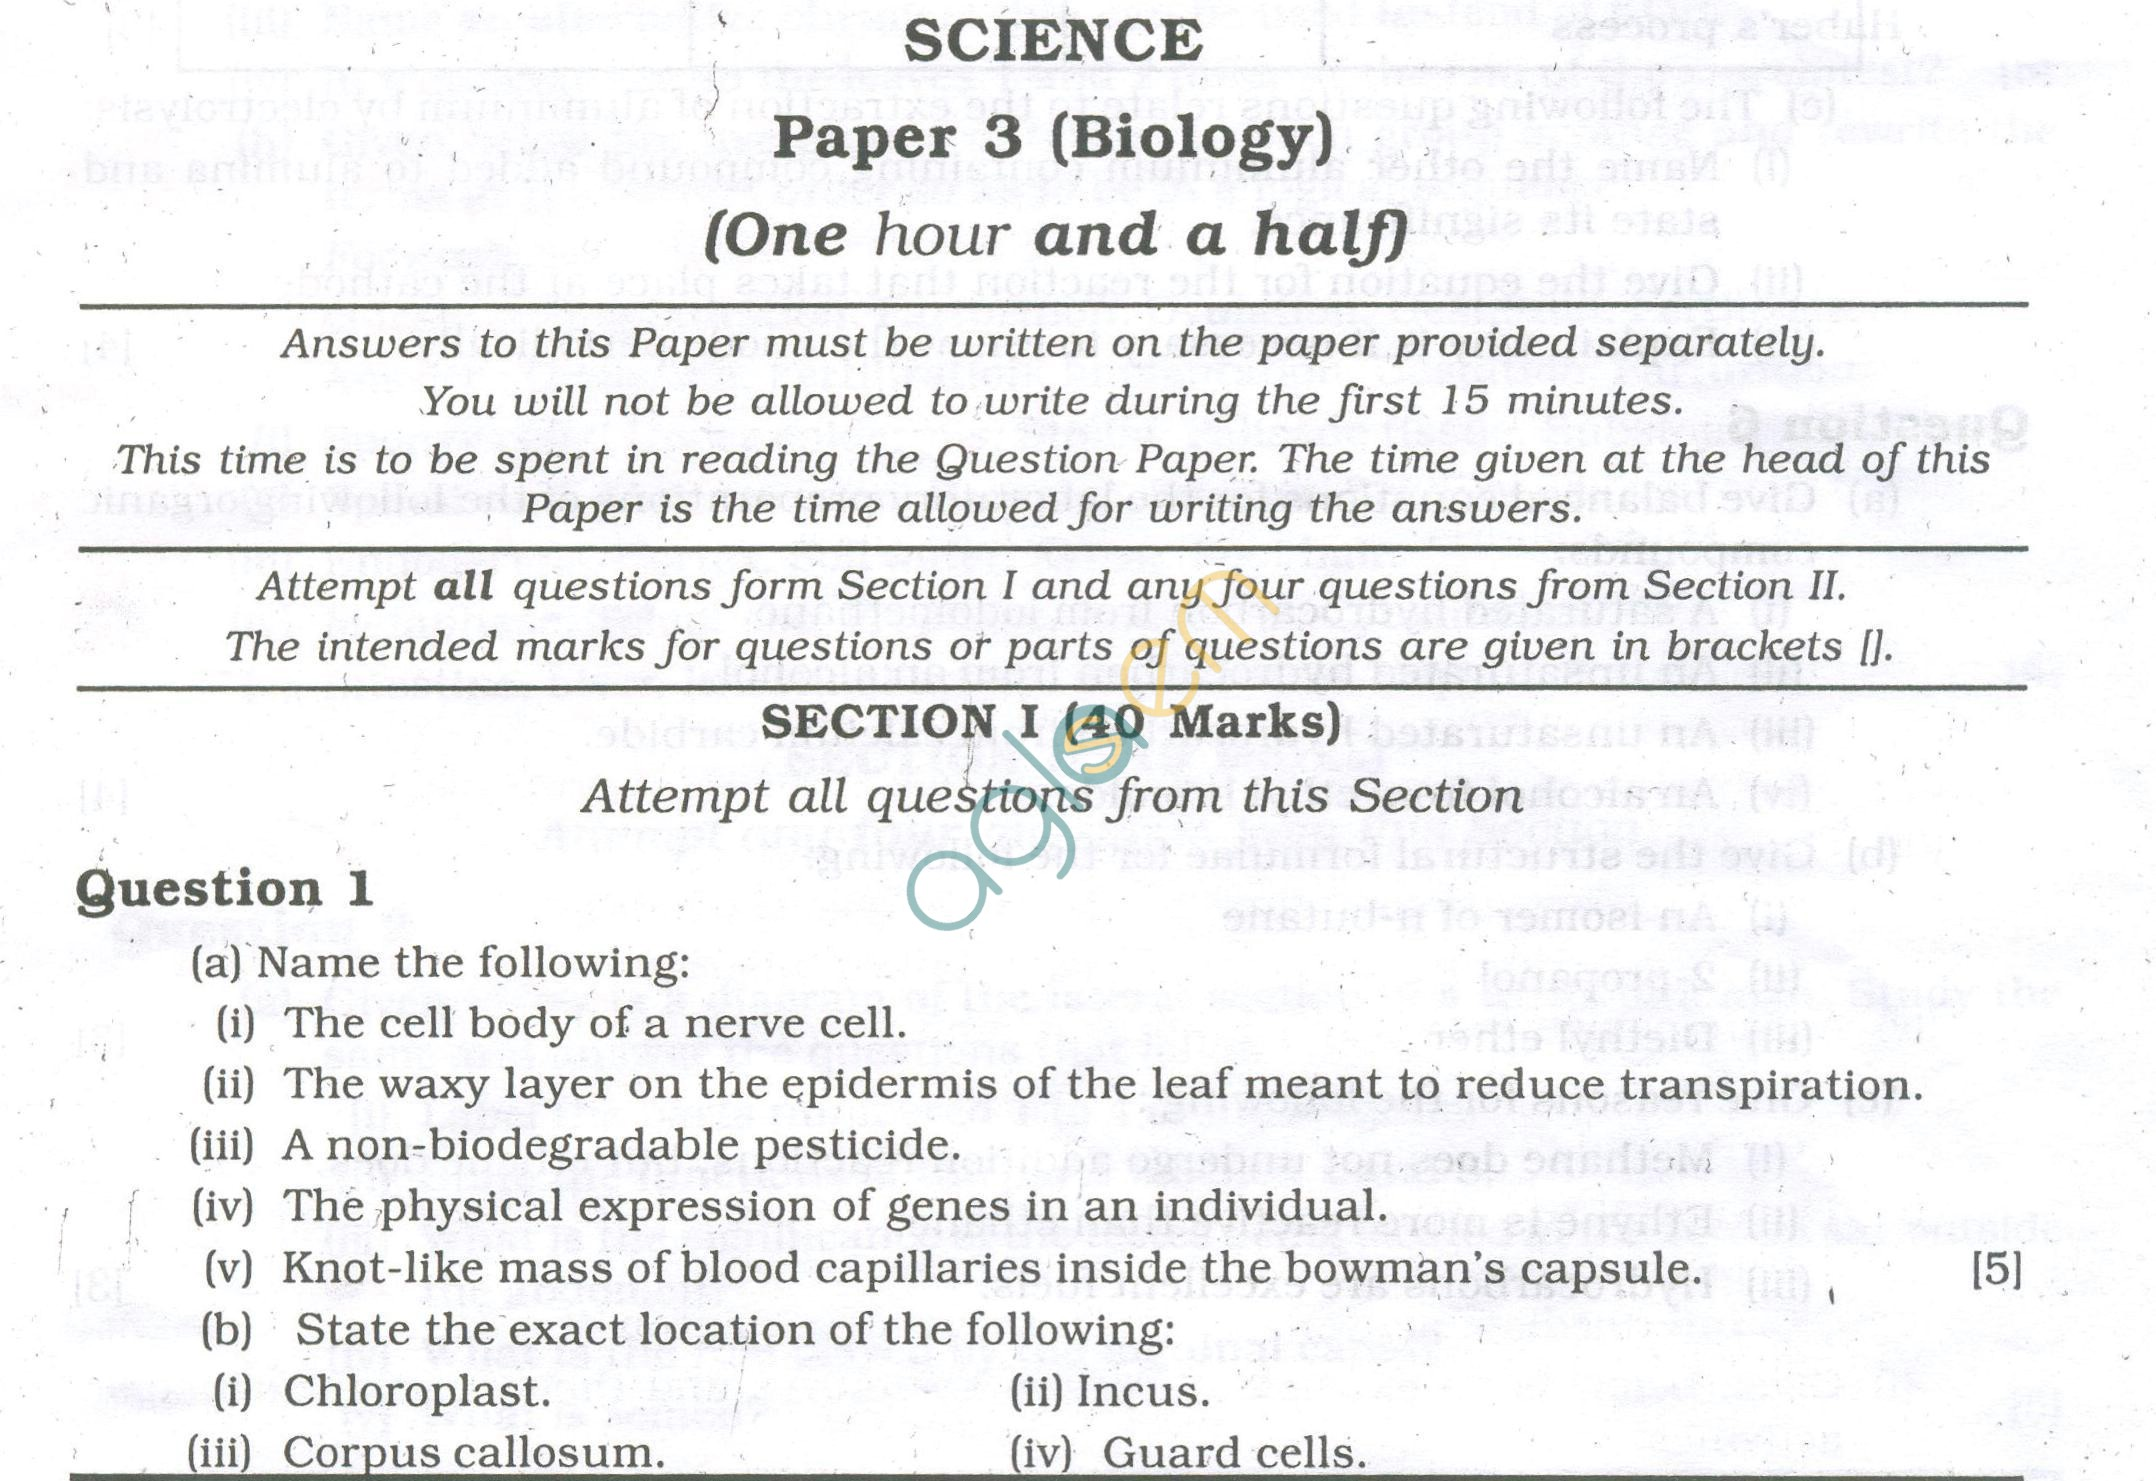 ICSE Question Papers 2013 for Class 10 - Biology